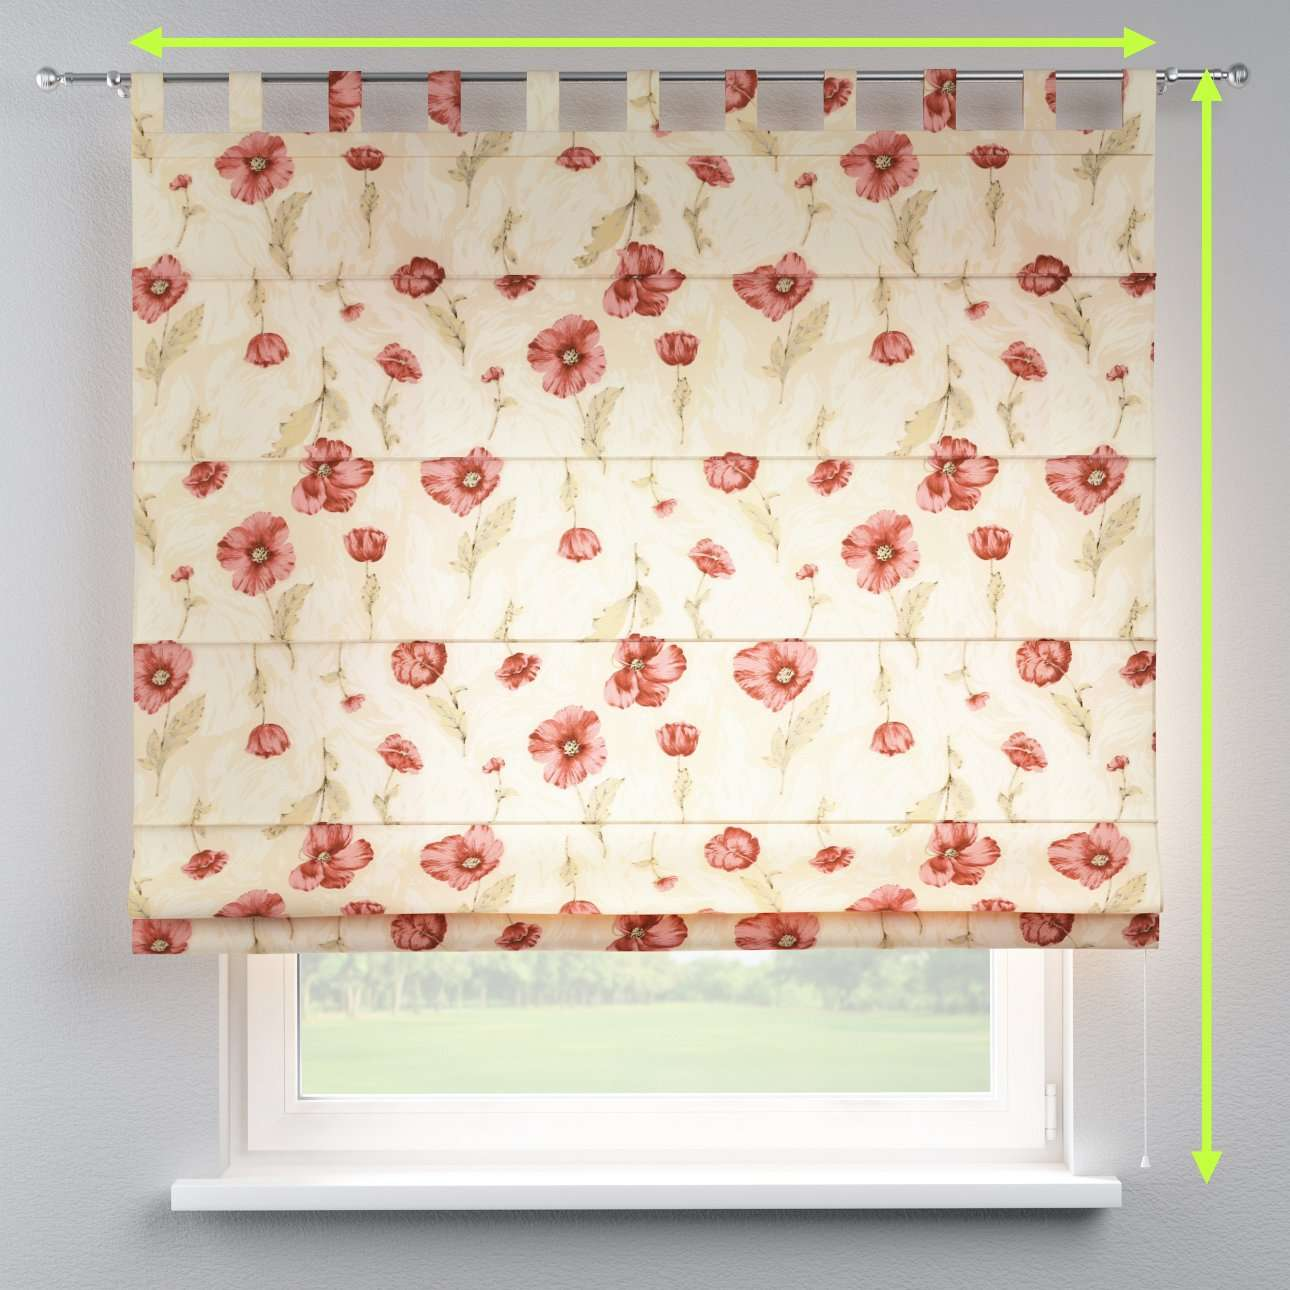 Verona tab top roman blind in collection Flowers, fabric: 303-01